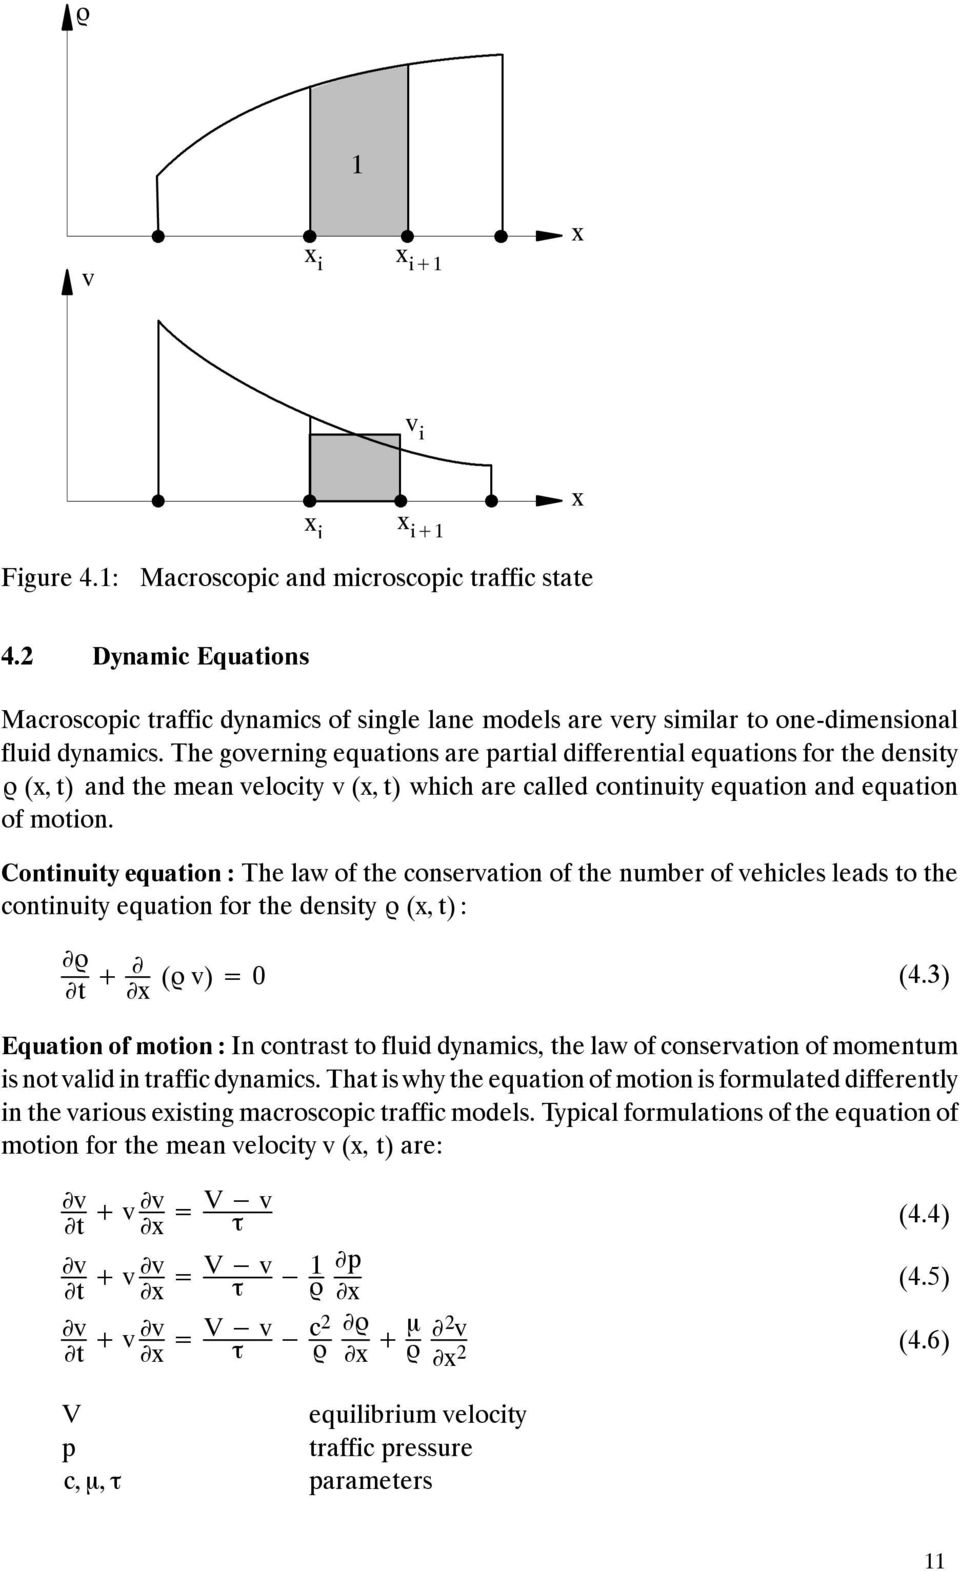 Continuity equation : The law of the conservation of the number of vehicles leads to the continuity equation for the density (, t) : t + ( v) = (4.